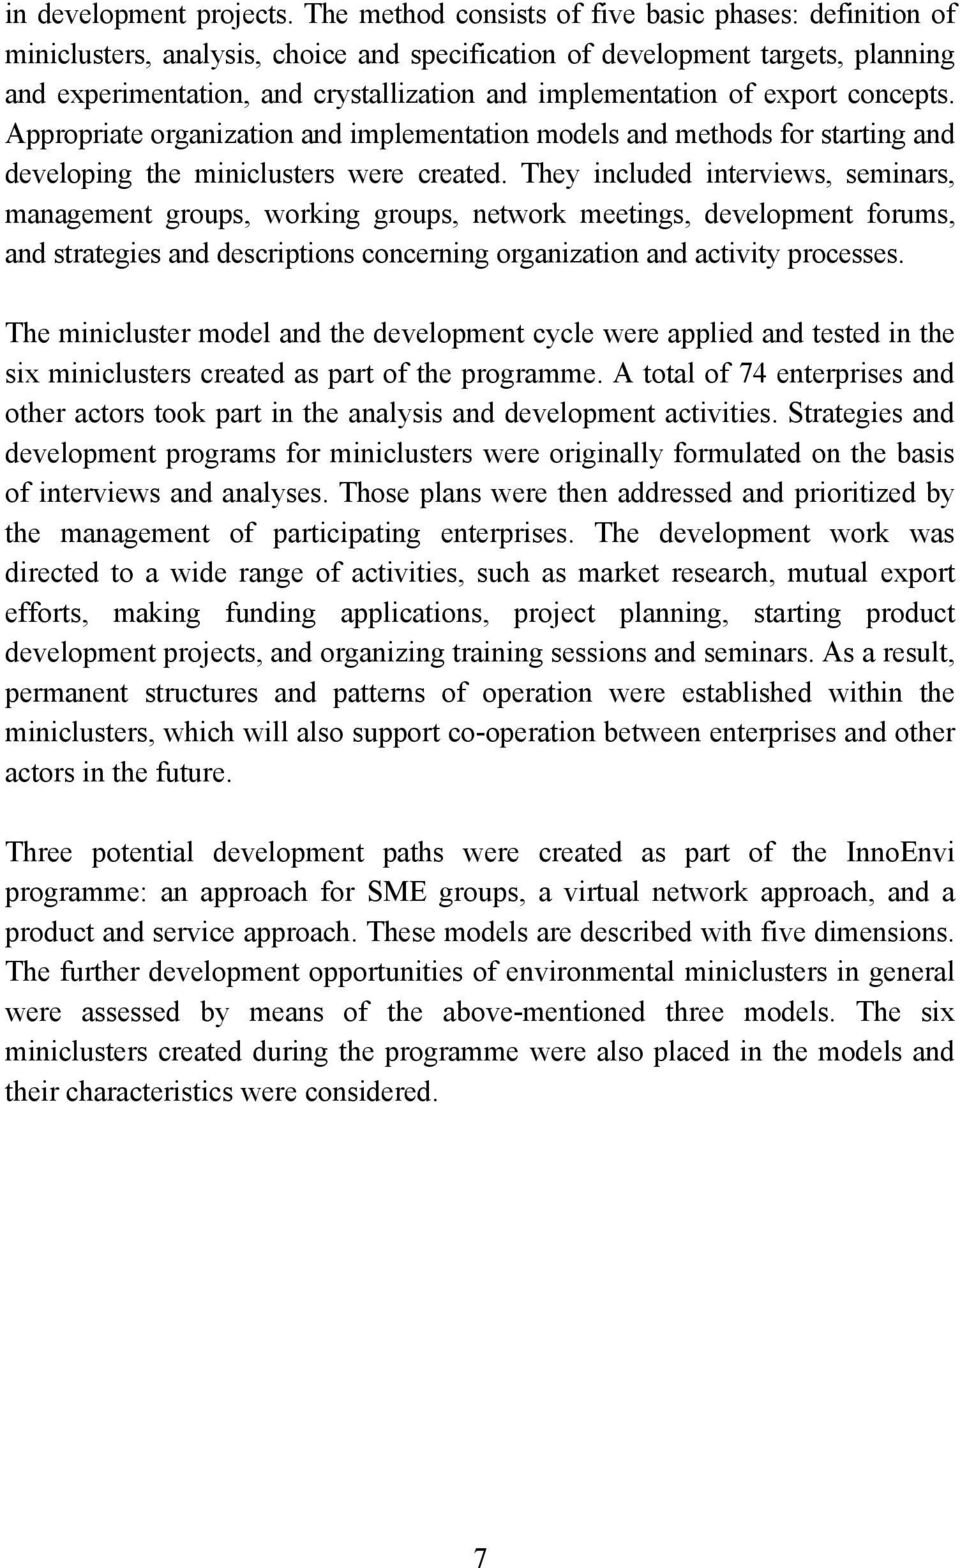 of export concepts. Appropriate organization and implementation models and methods for starting and developing the miniclusters were created.